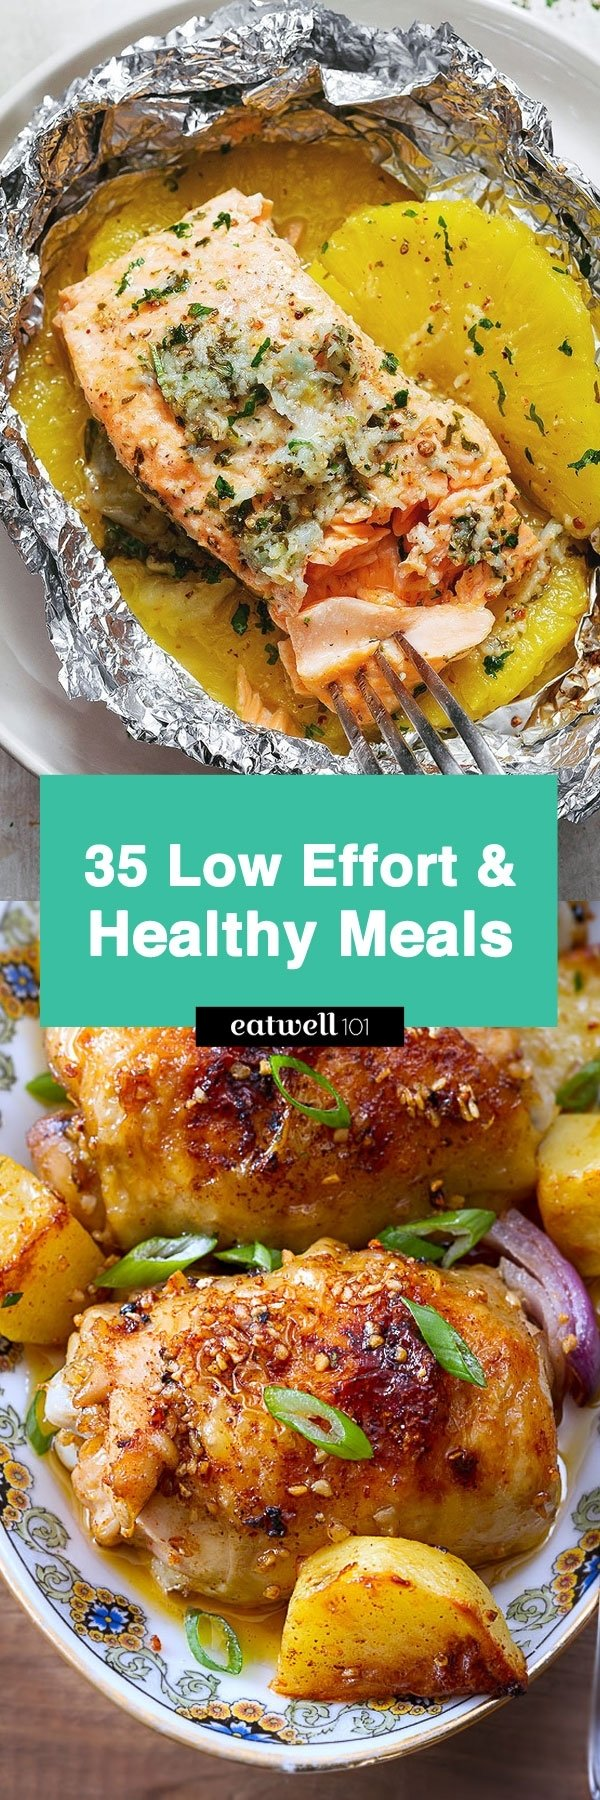 10 Lovely Dinner Ideas For Two Healthy 41 low effort and healthy dinner recipes eatwell101 31 2020